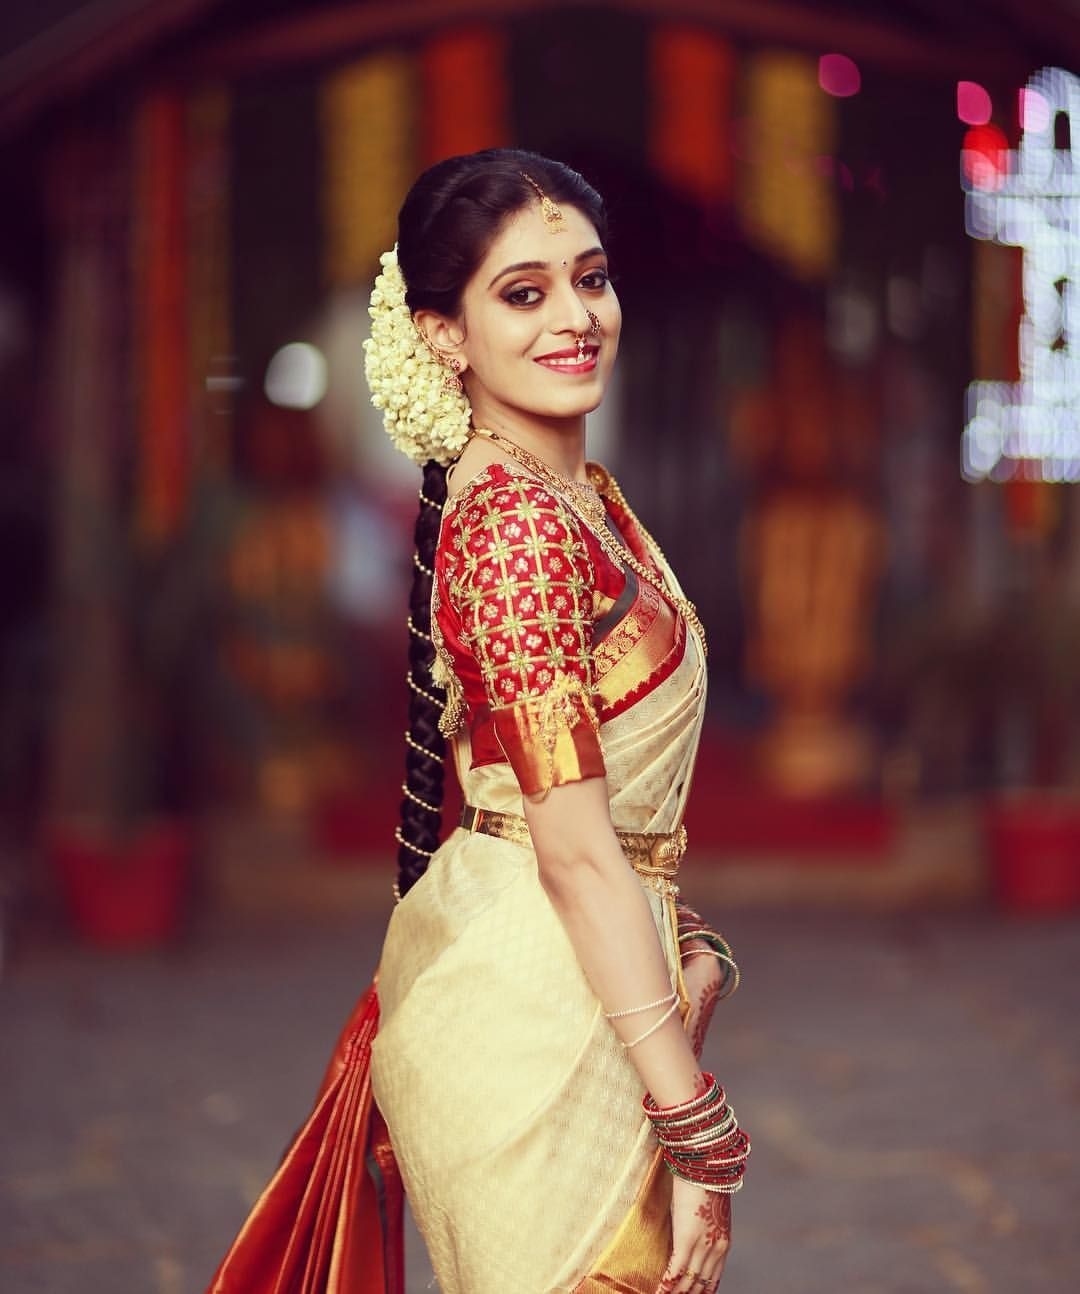 Modern Indian Bride Hairstyle: South Indian Bride. Temple Jewelry. Jhumkis.silk